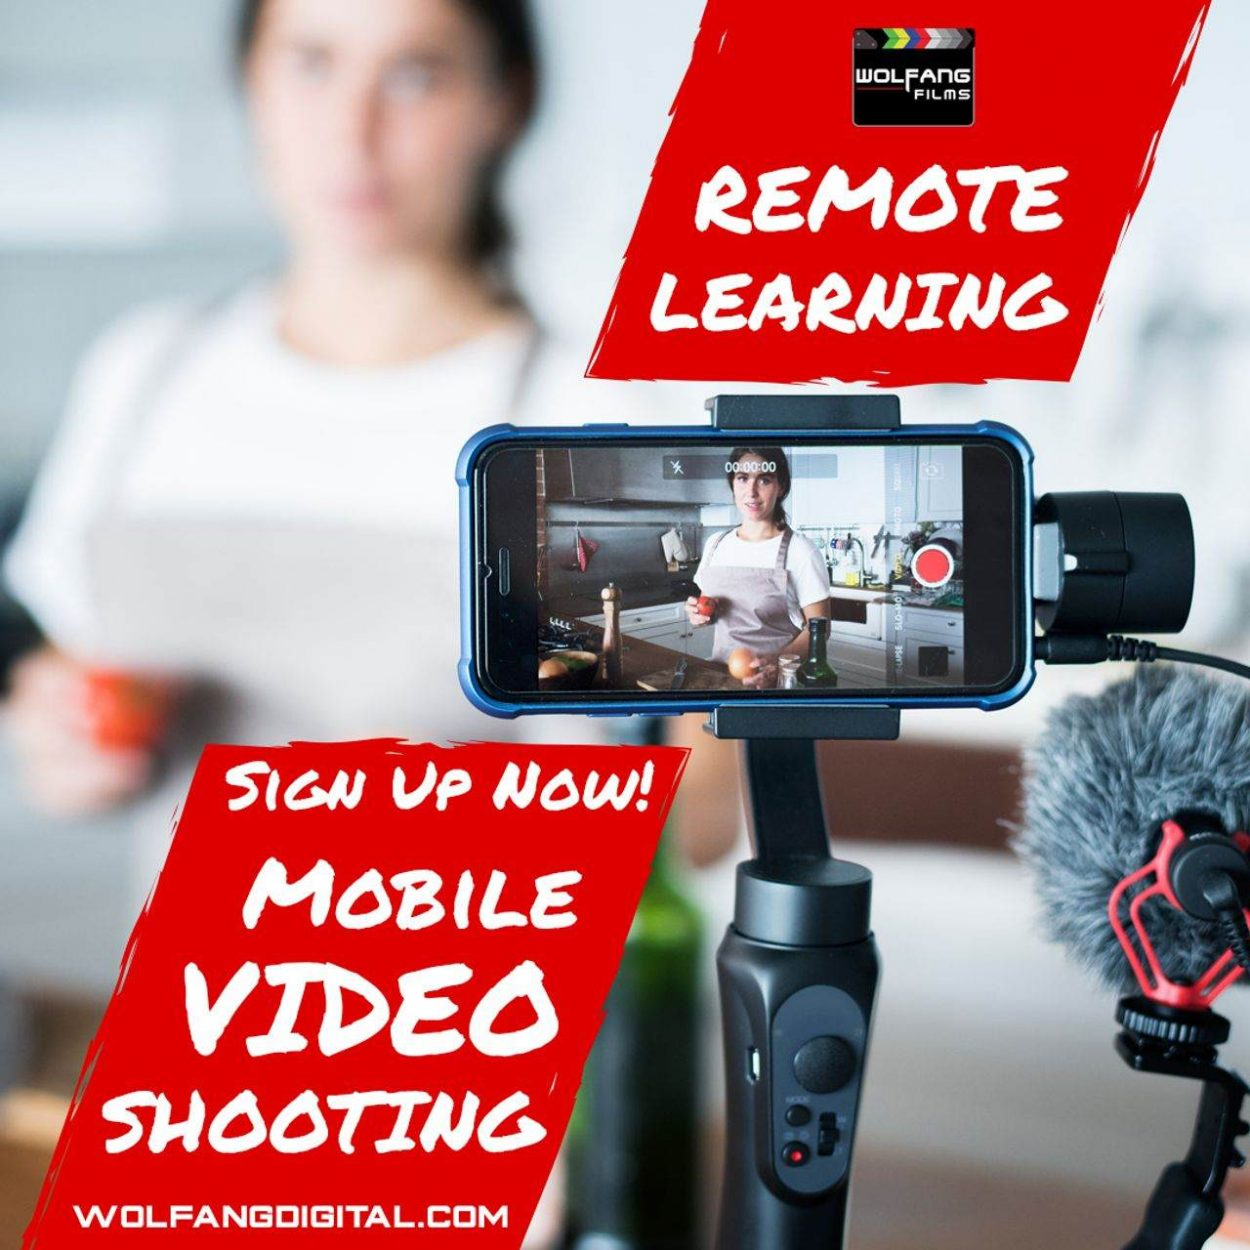 mobile video shooting video editing course by wolfang digital